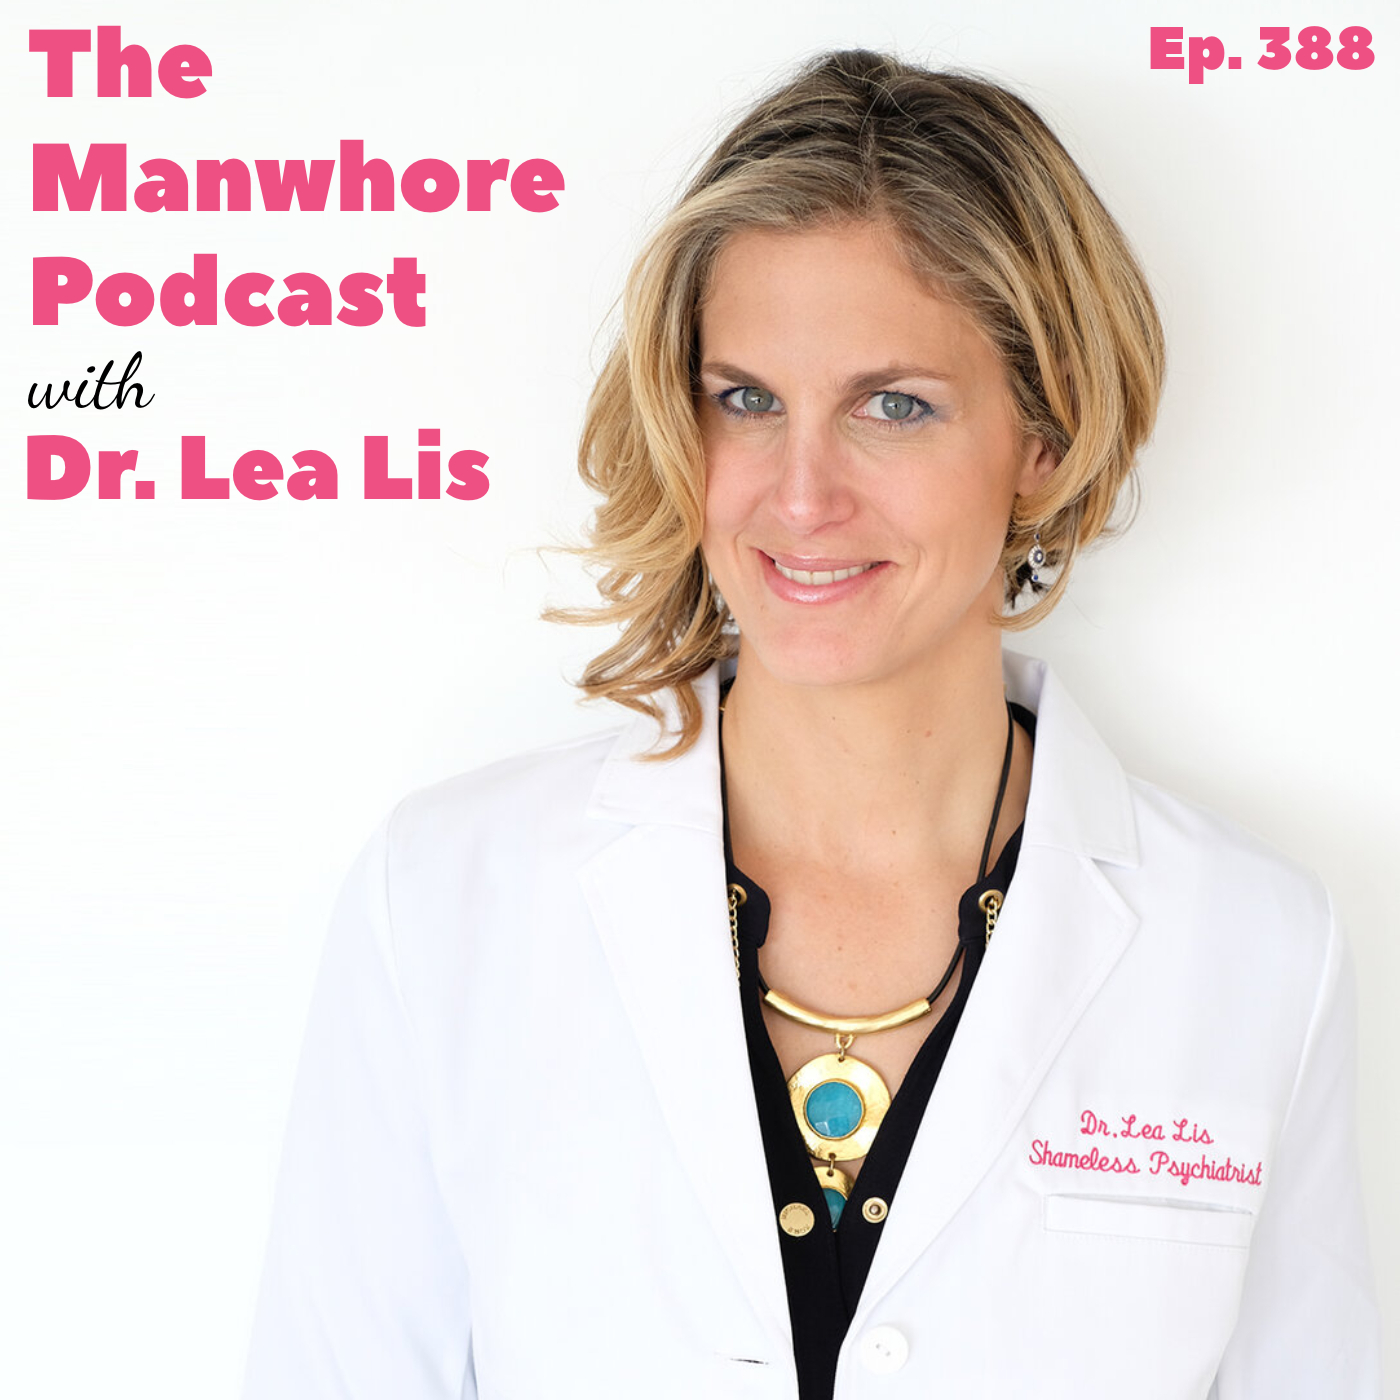 The Manwhore Podcast: A Sex-Positive Quest - Ep. 388: Family Nudity, Sexual Shame, and Child Psychology with Dr. Lea Lis